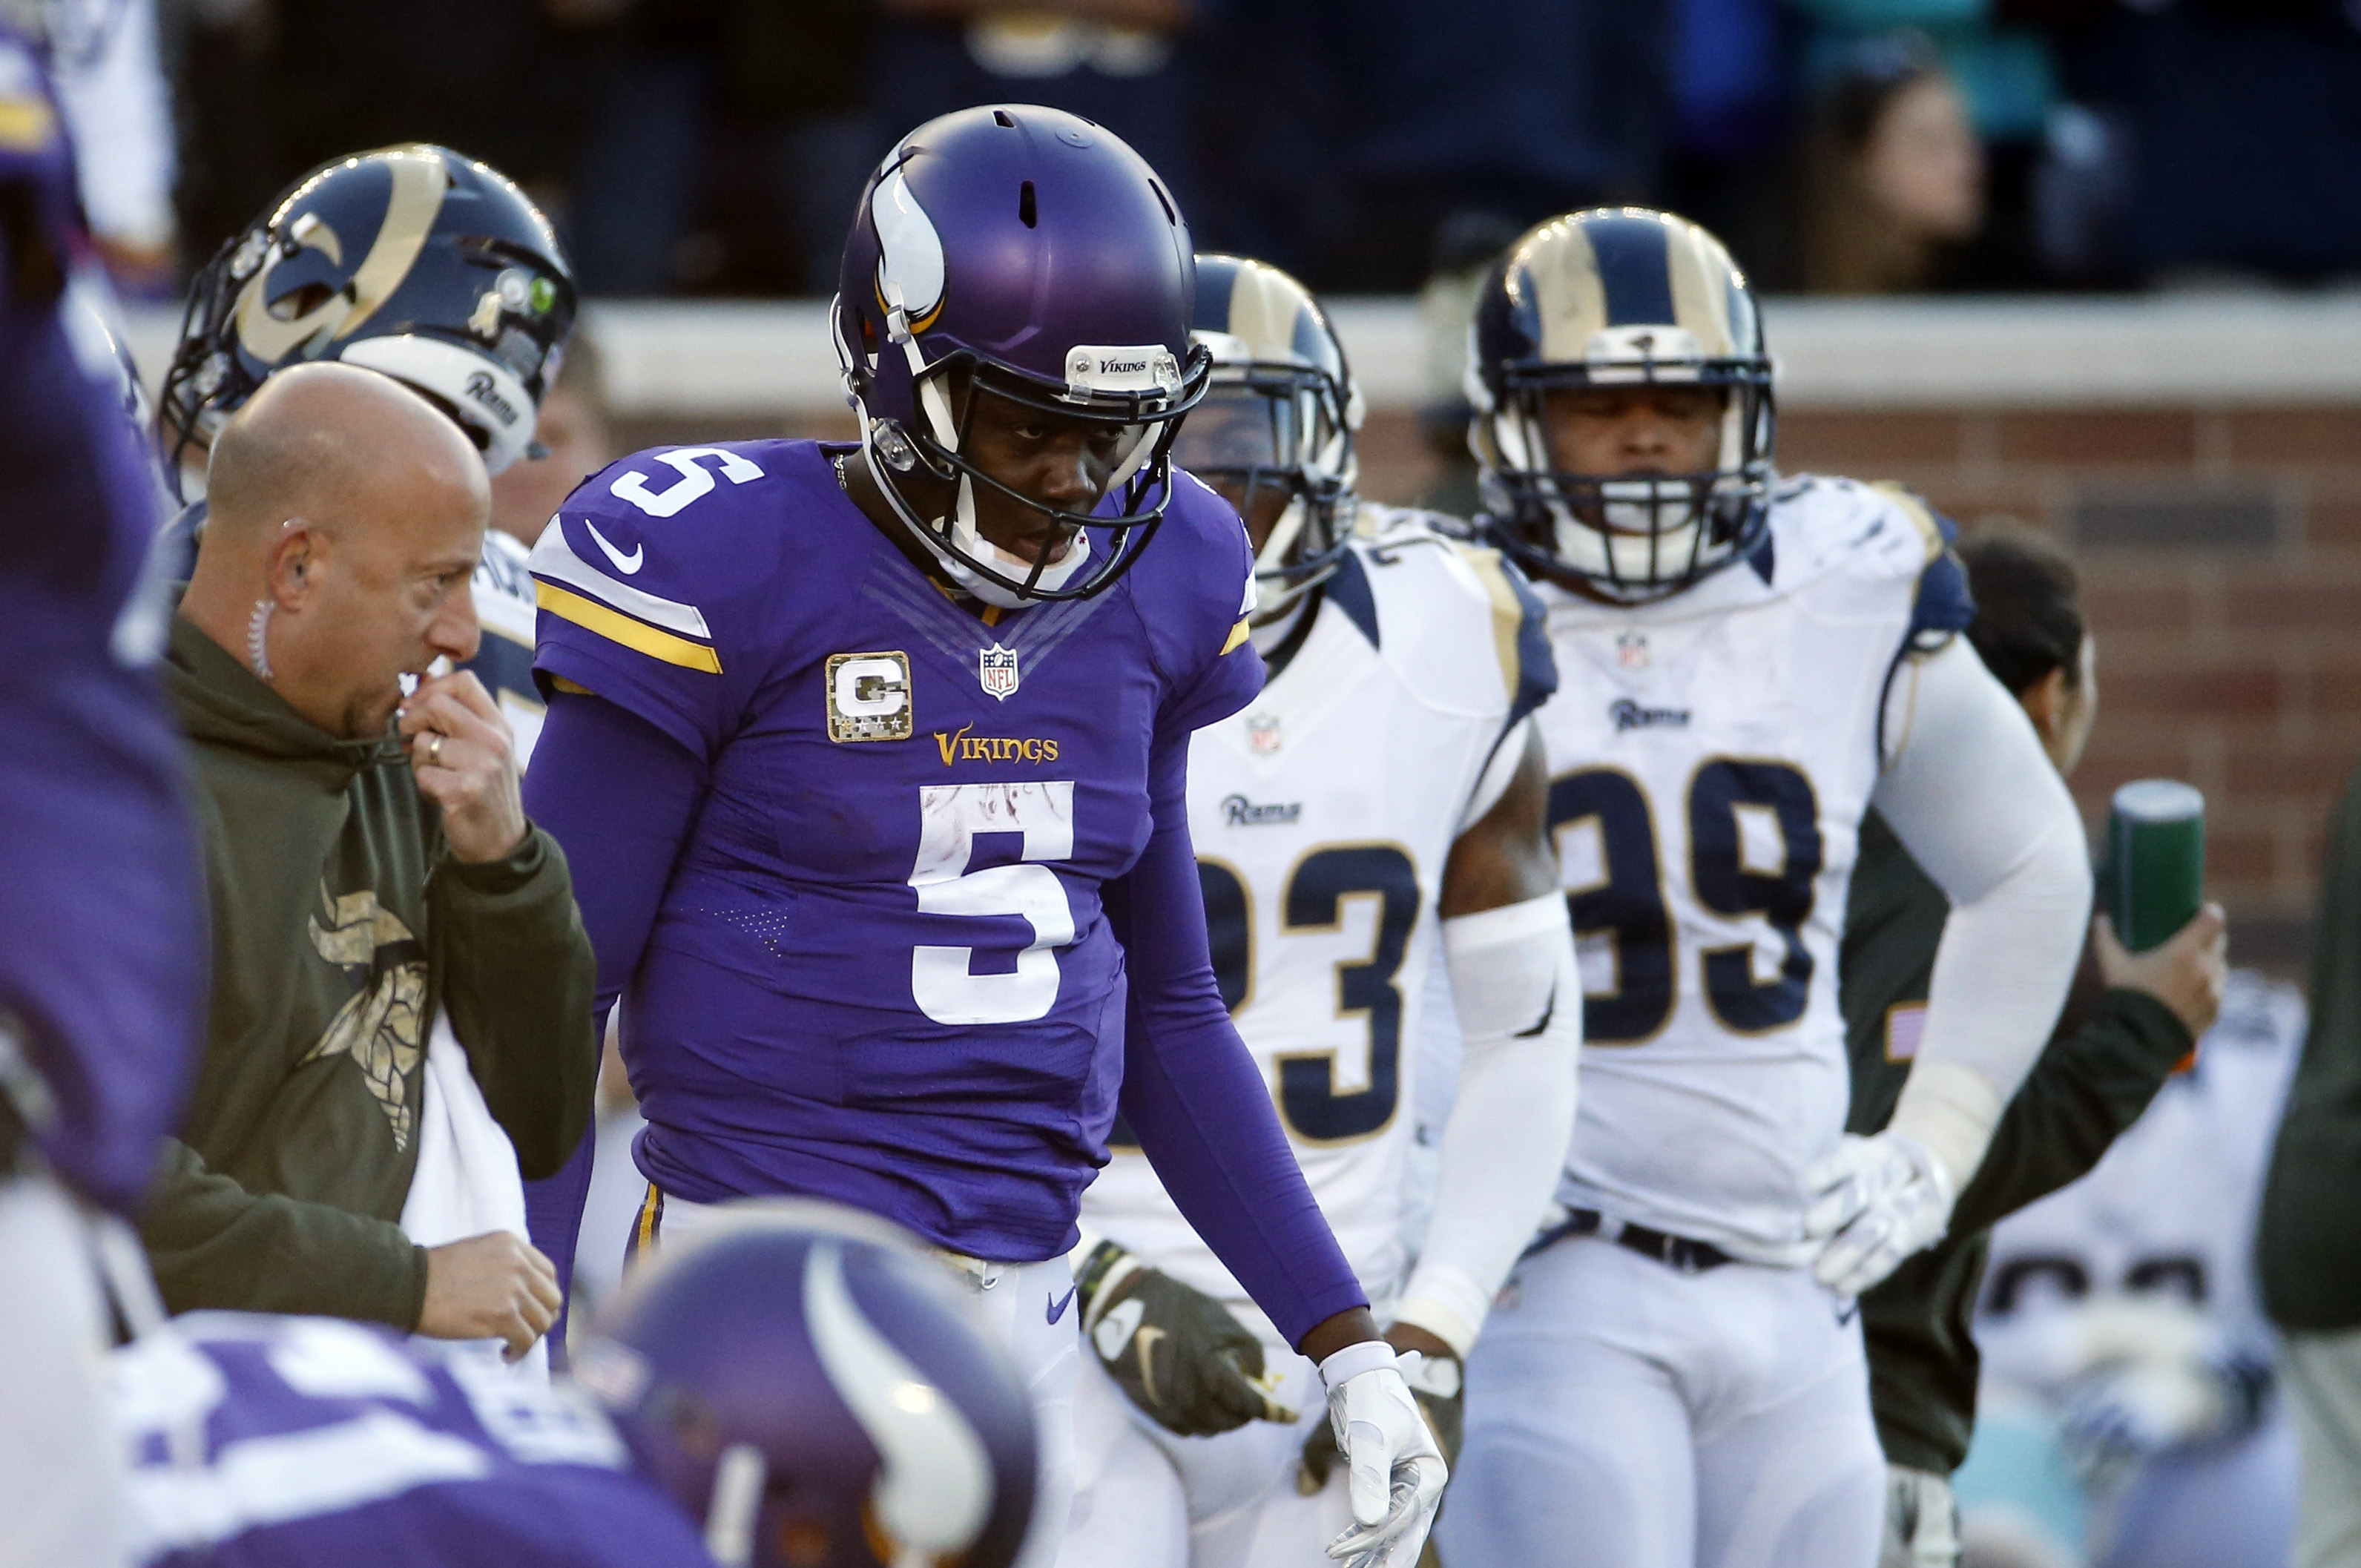 Minnesota Vikings quarterback Teddy Bridgewater (5) walks back to the bench after being examined on the field during the second half of an NFL football game against the St. Louis Rams, Sunday, Nov. 8, 2015, in Minneapolis. (AP Photo/Ann Heisenfelt)